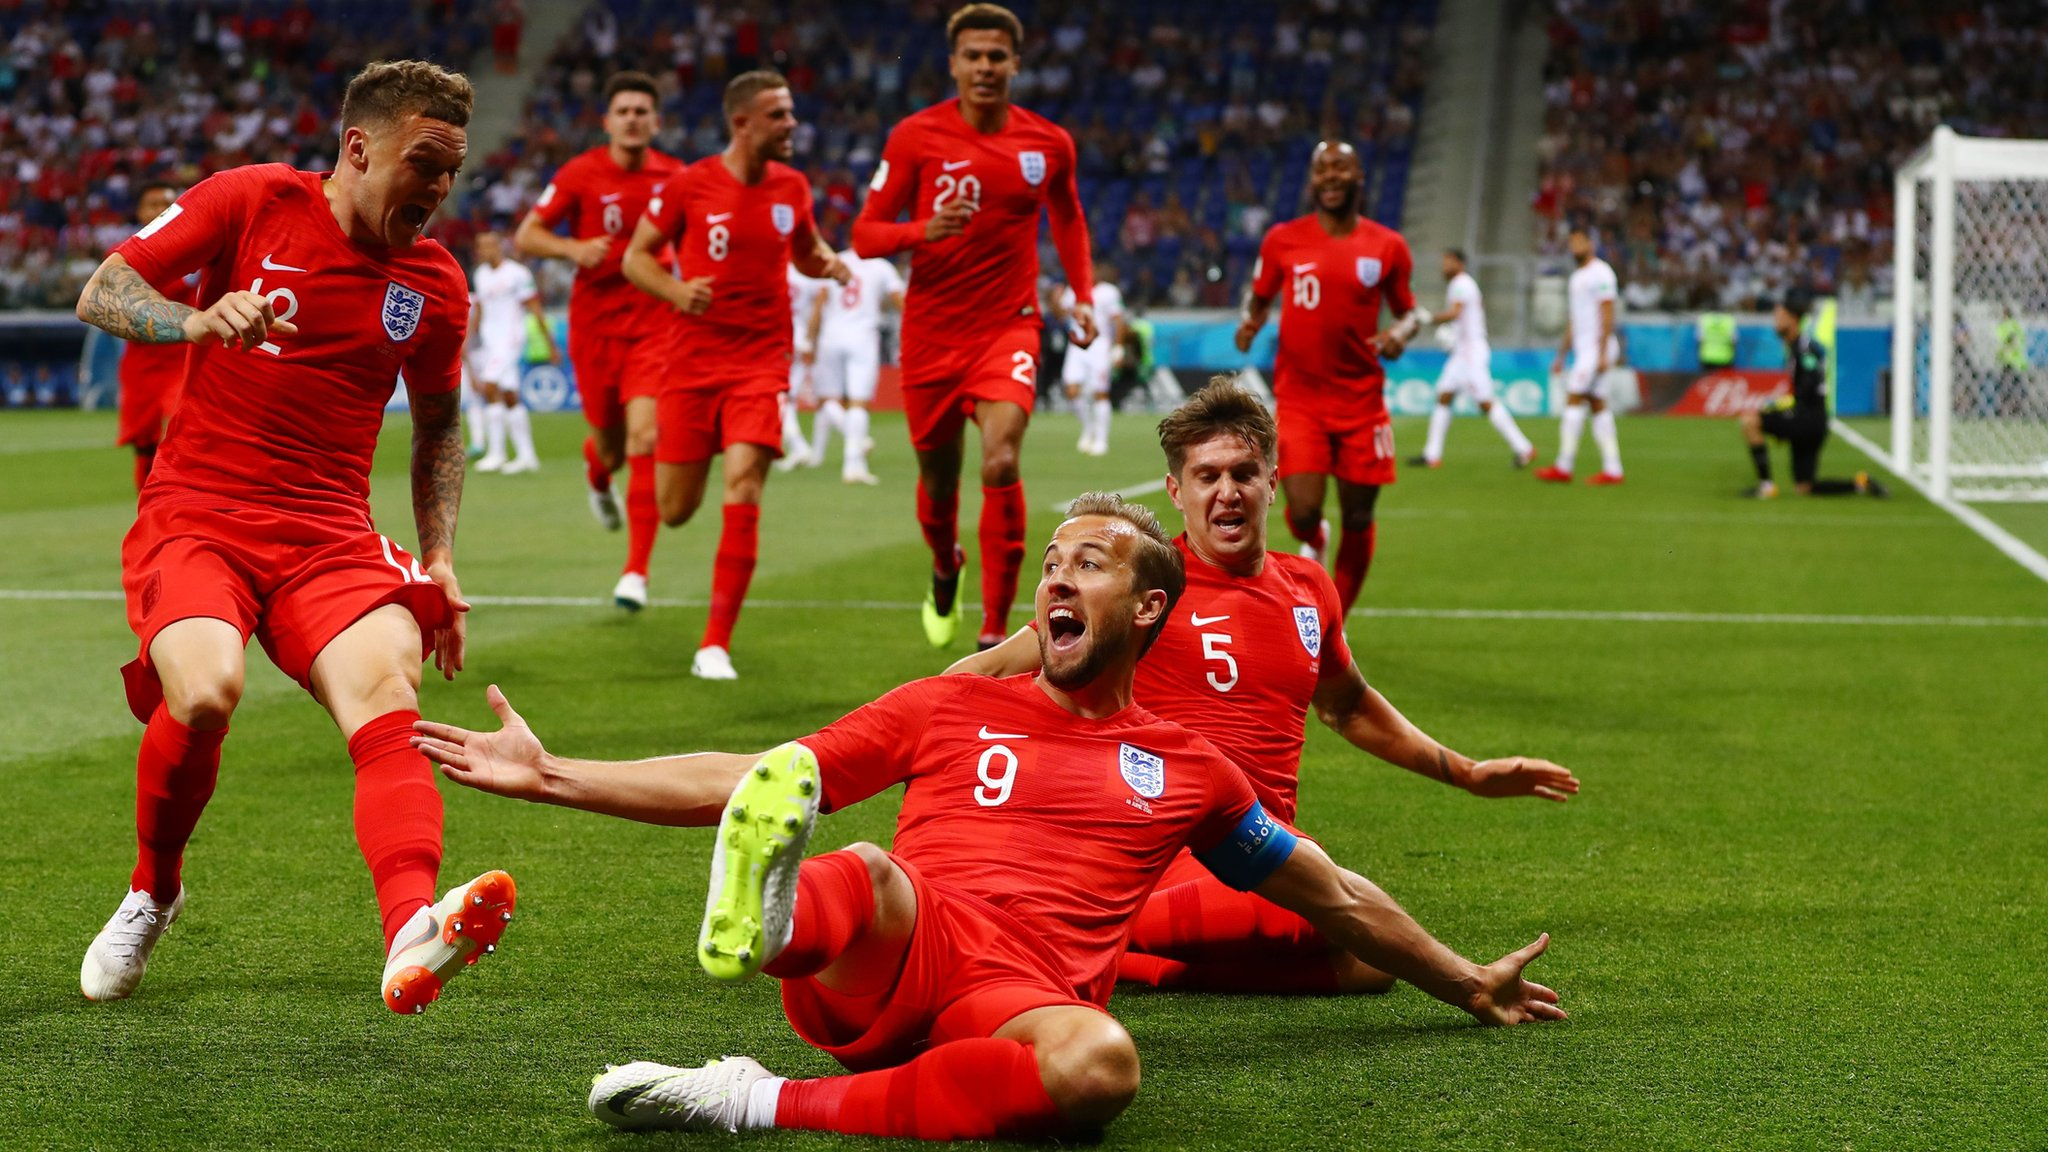 Tunisia 1-2 England: Harry Kane's late goal secures World Cup win